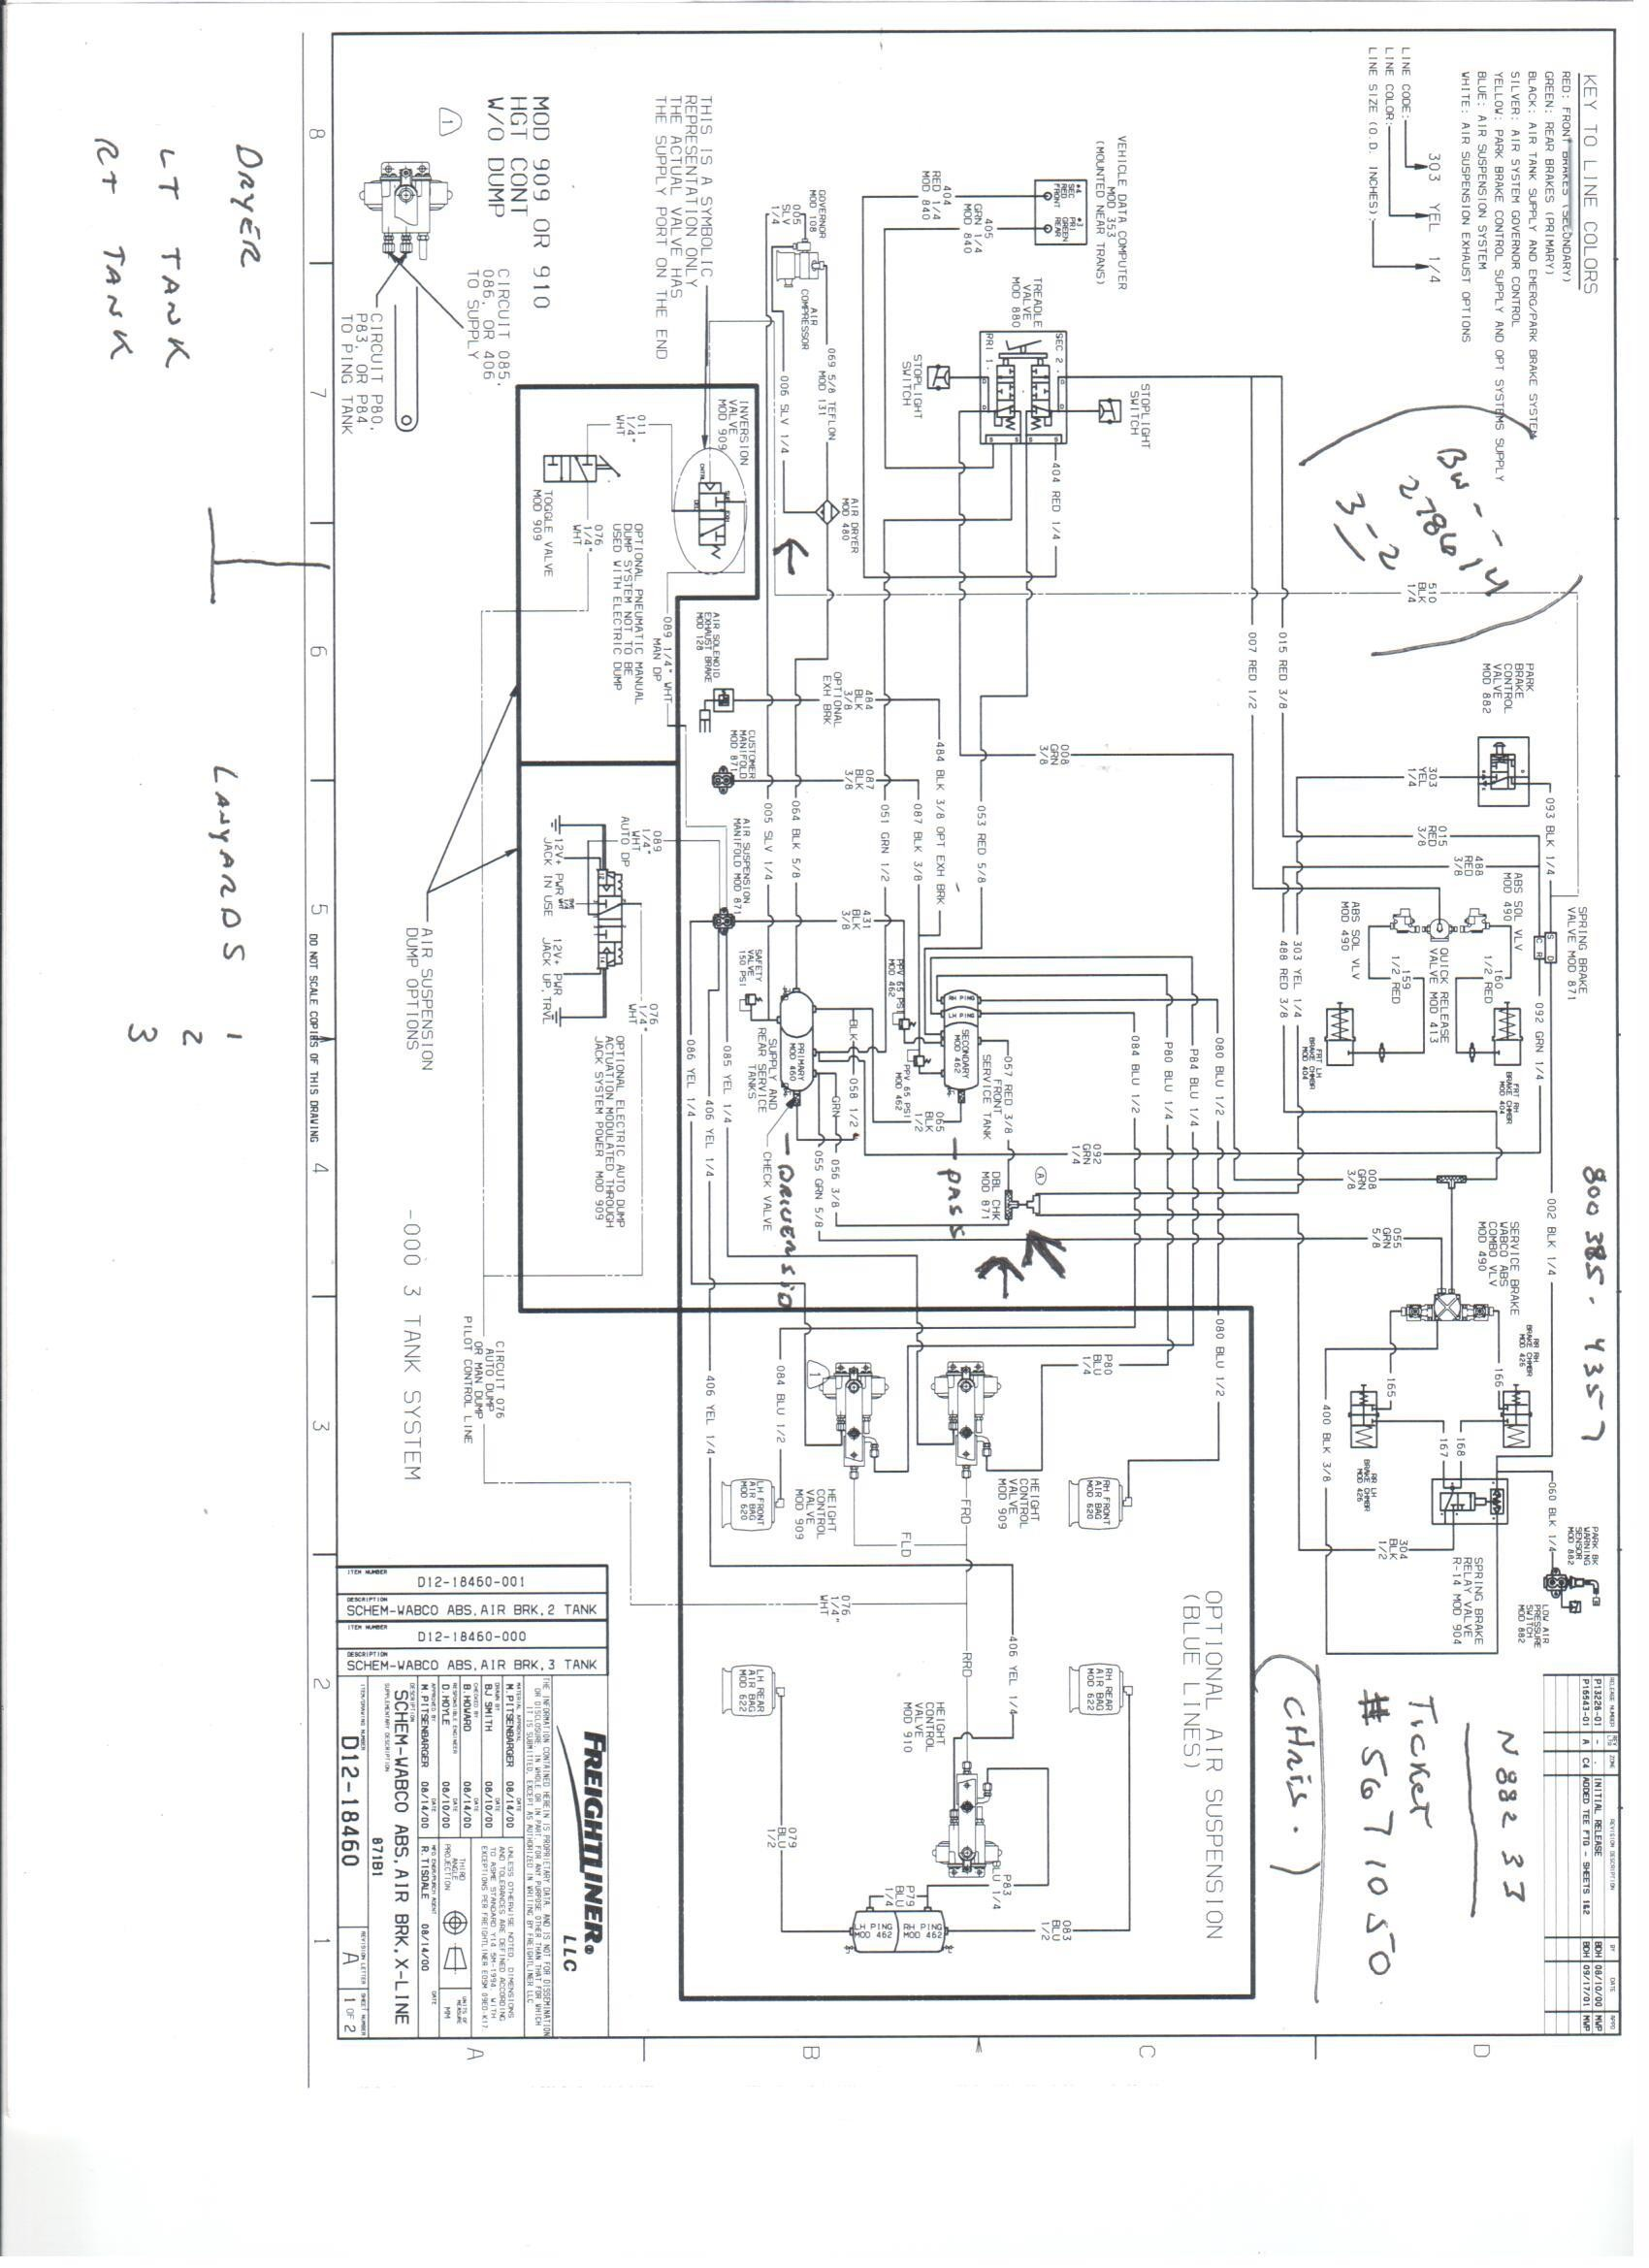 Chassis Electrical Wiring Diagrams